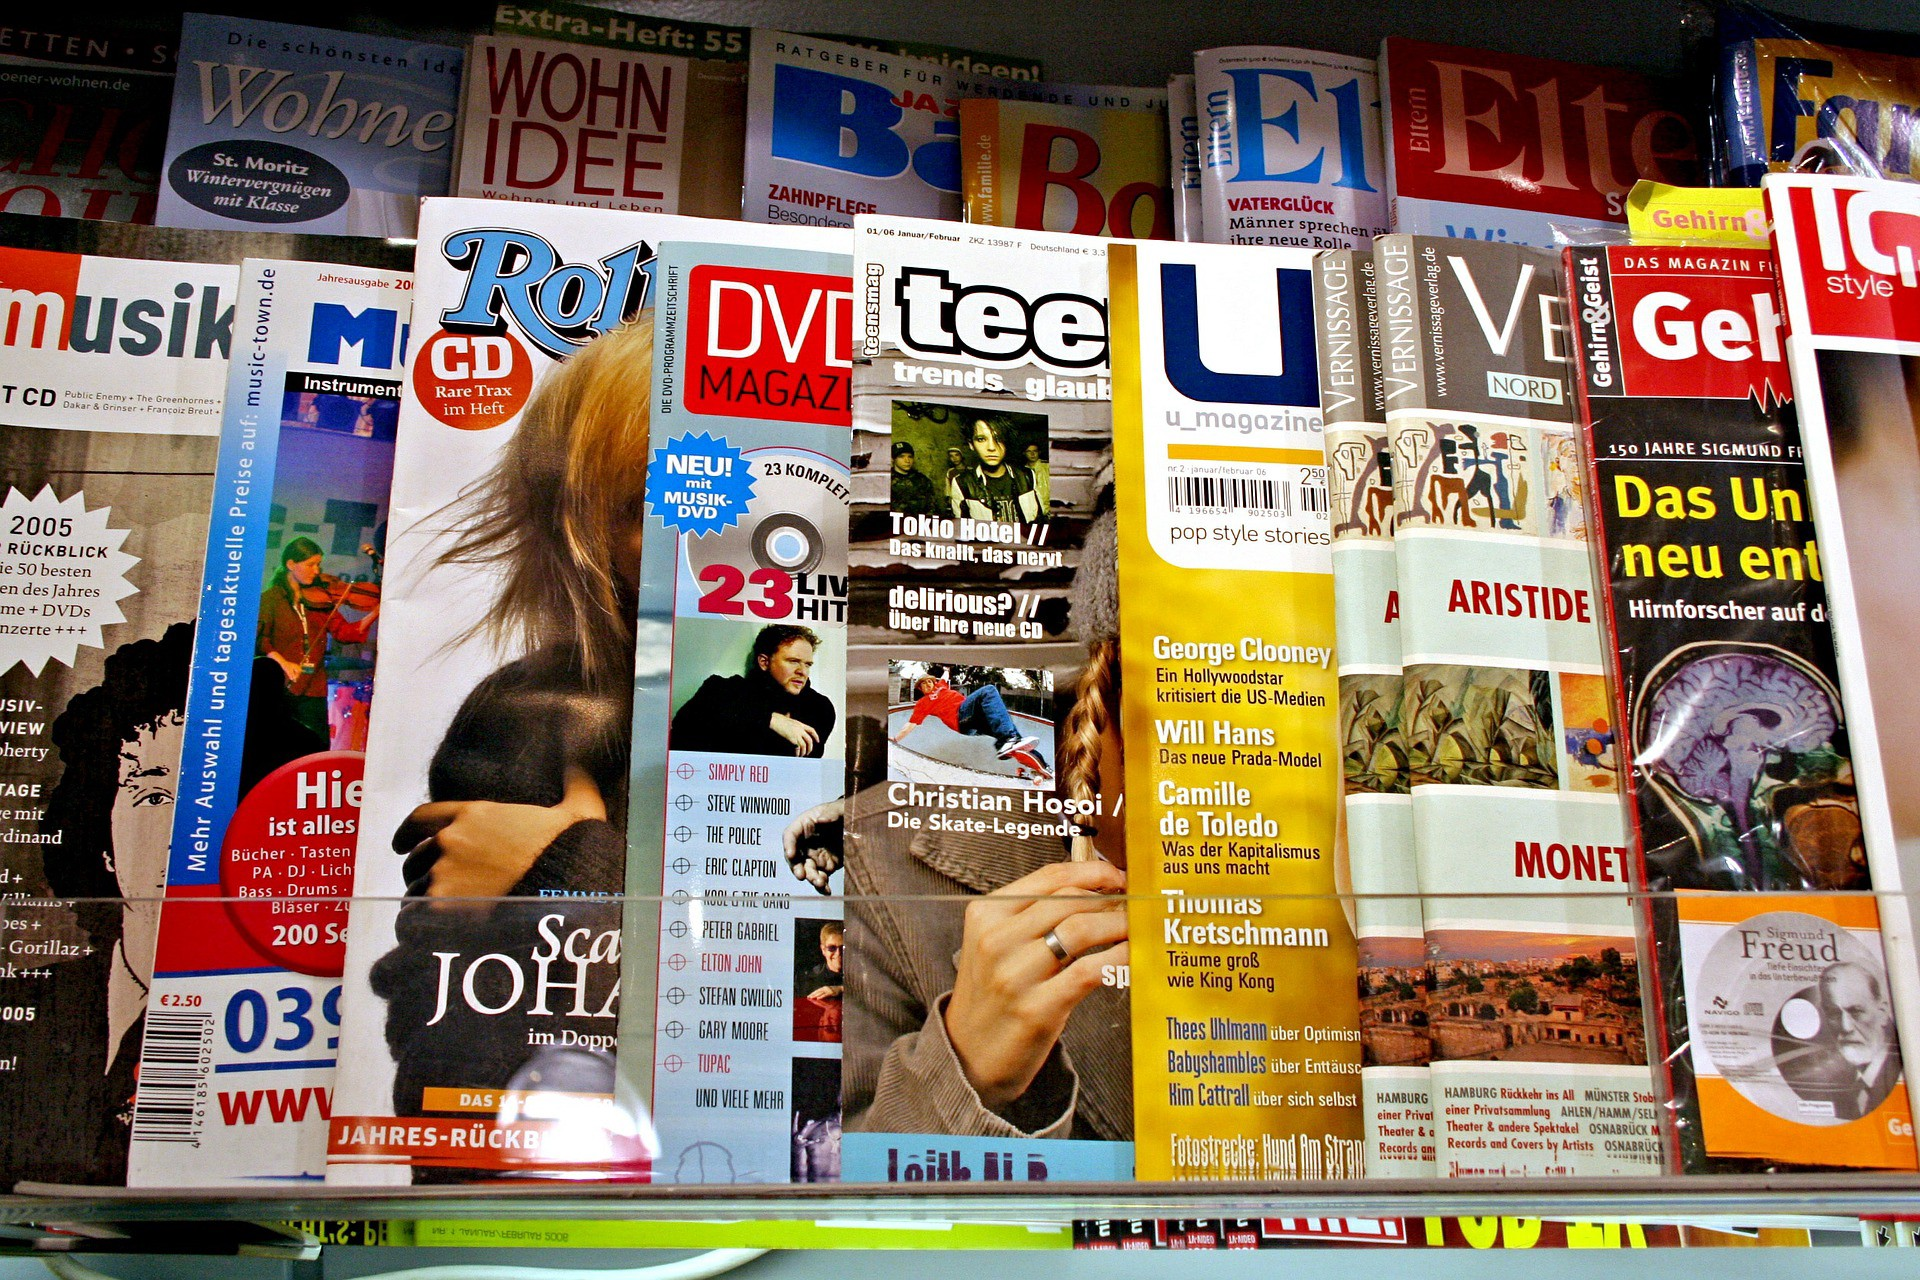 A newsstand displaying various magazines